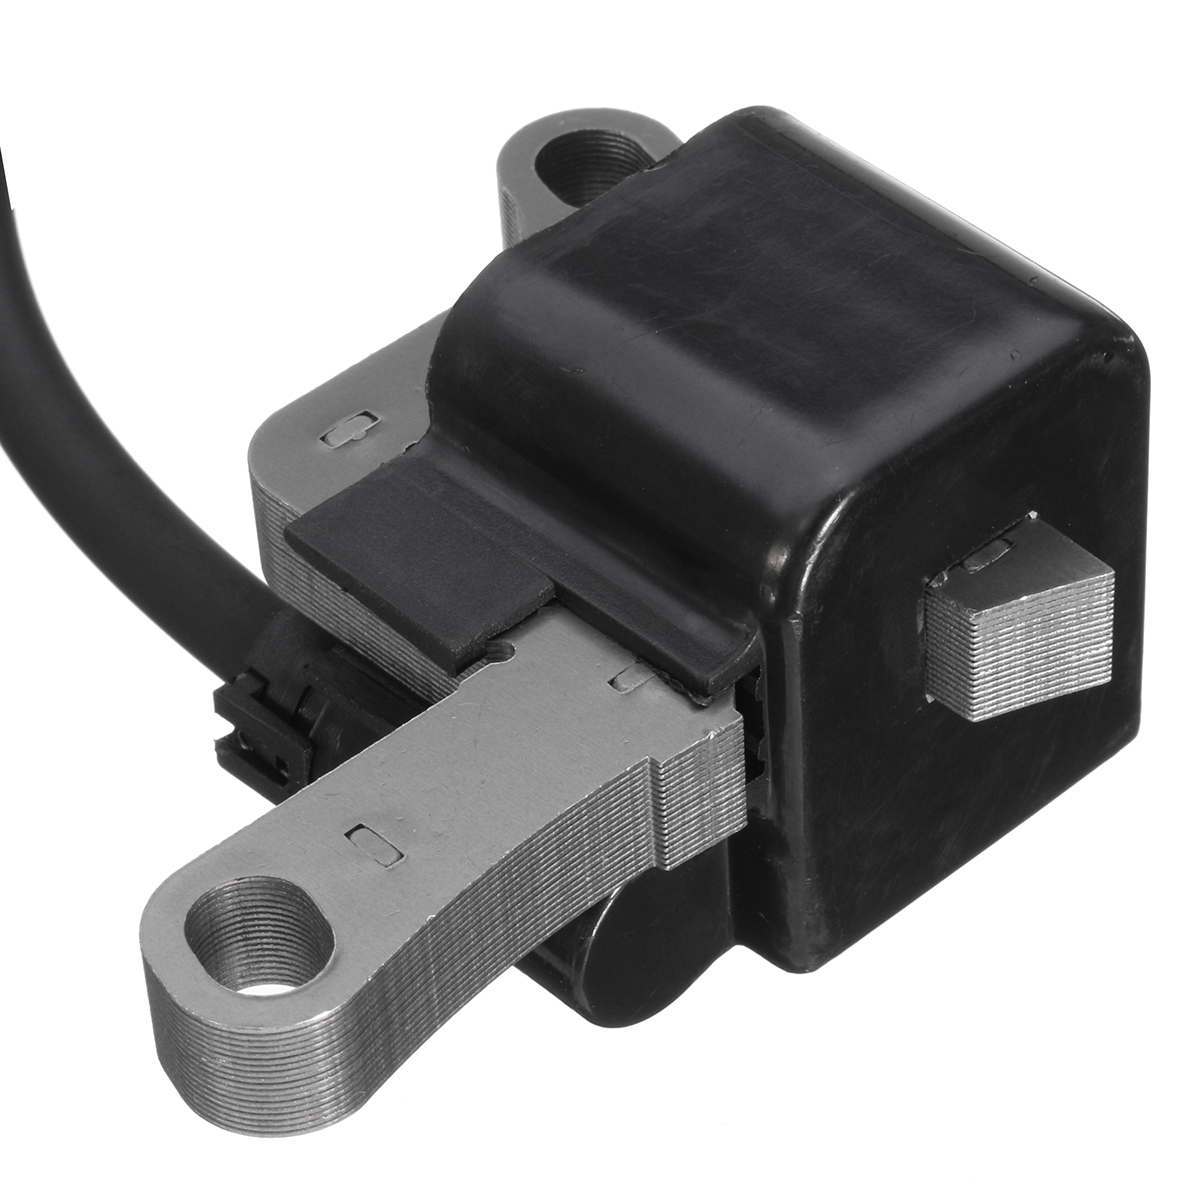 Ignition Coil Module Magneto For Toro Snowthrower / Snowblower Briggs 801268